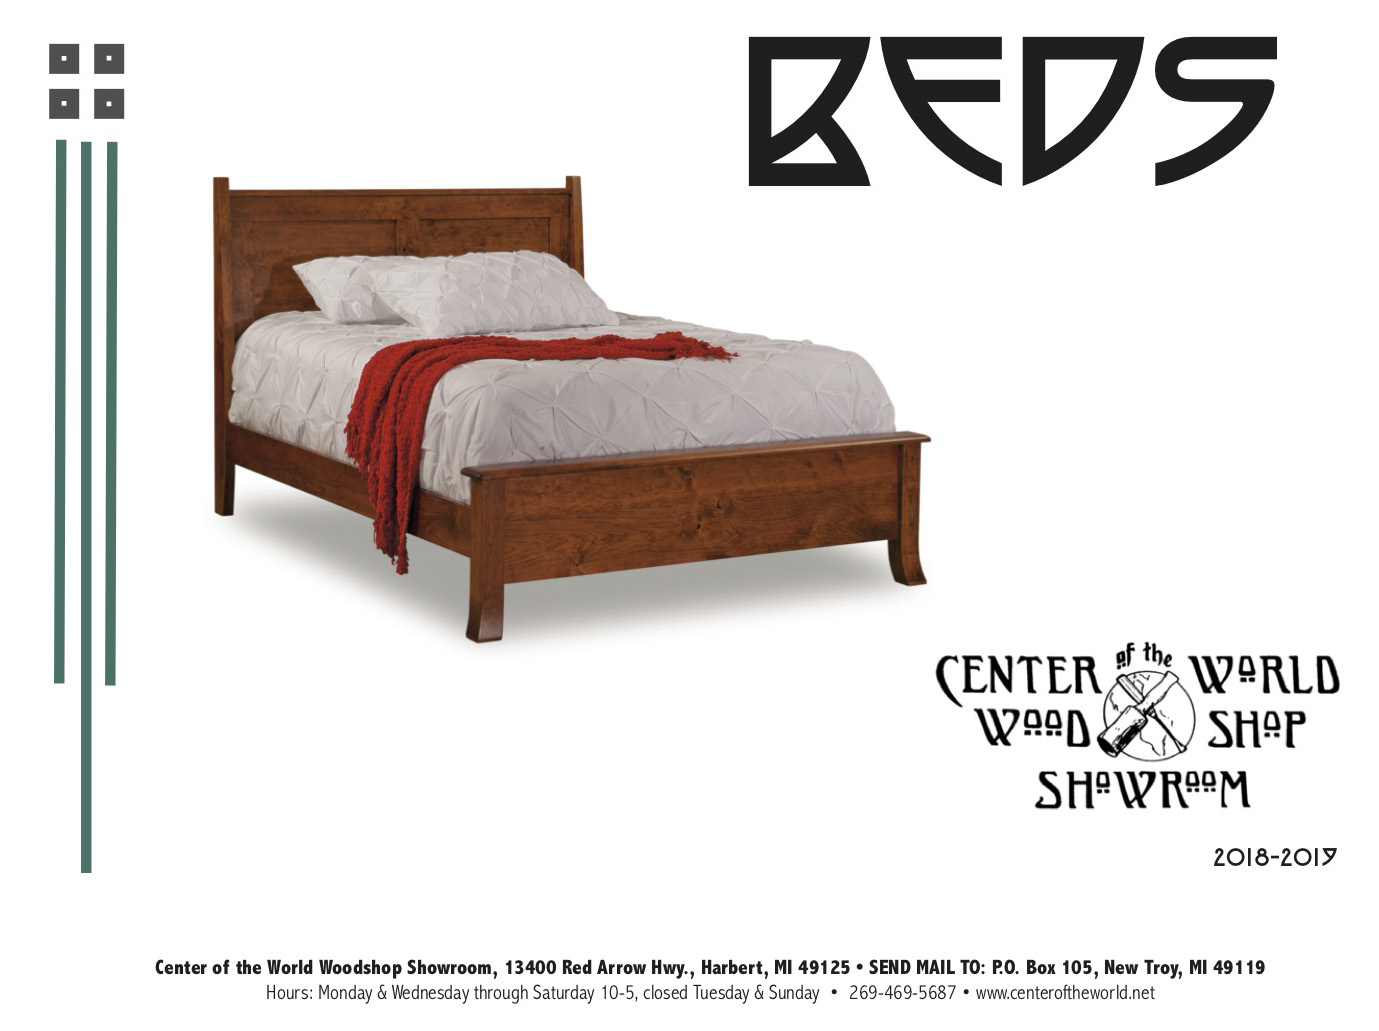 Beds Catalog Cover Image